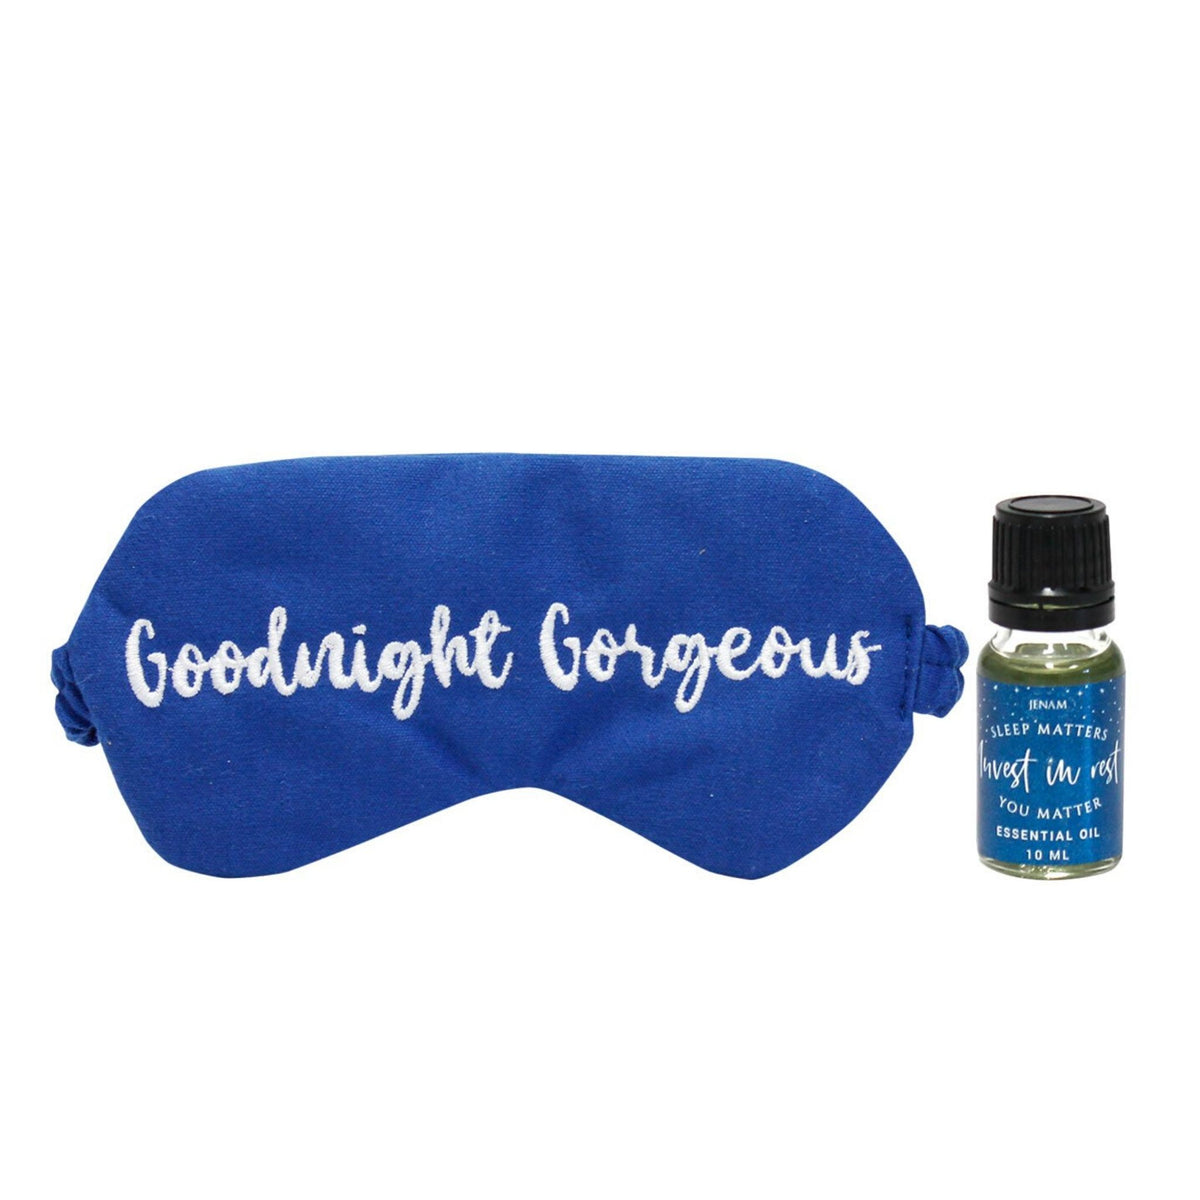 Invest in Rest Eye Mask and Essential Oil Gift Set